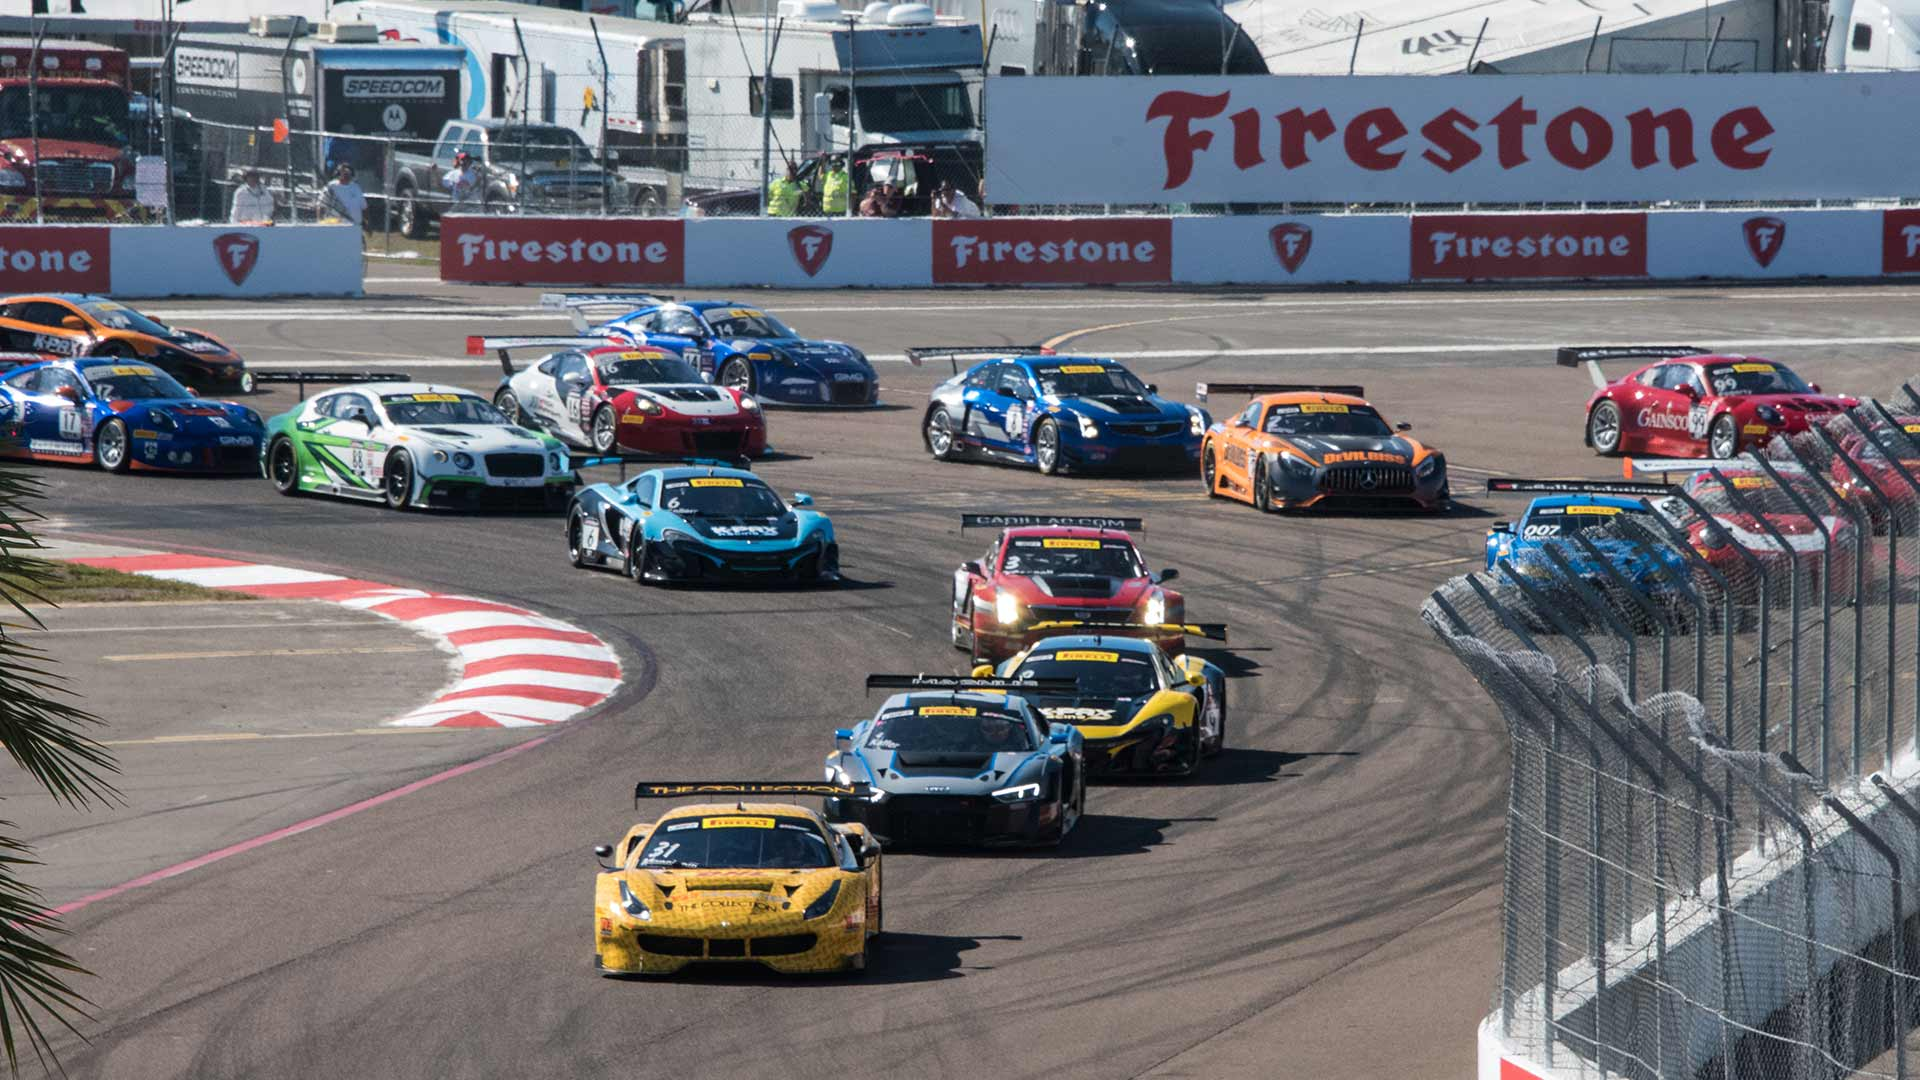 Pirelli World Challenge cars speeding through turn 1 at the Firestone Grand Prix of St. Petersburg